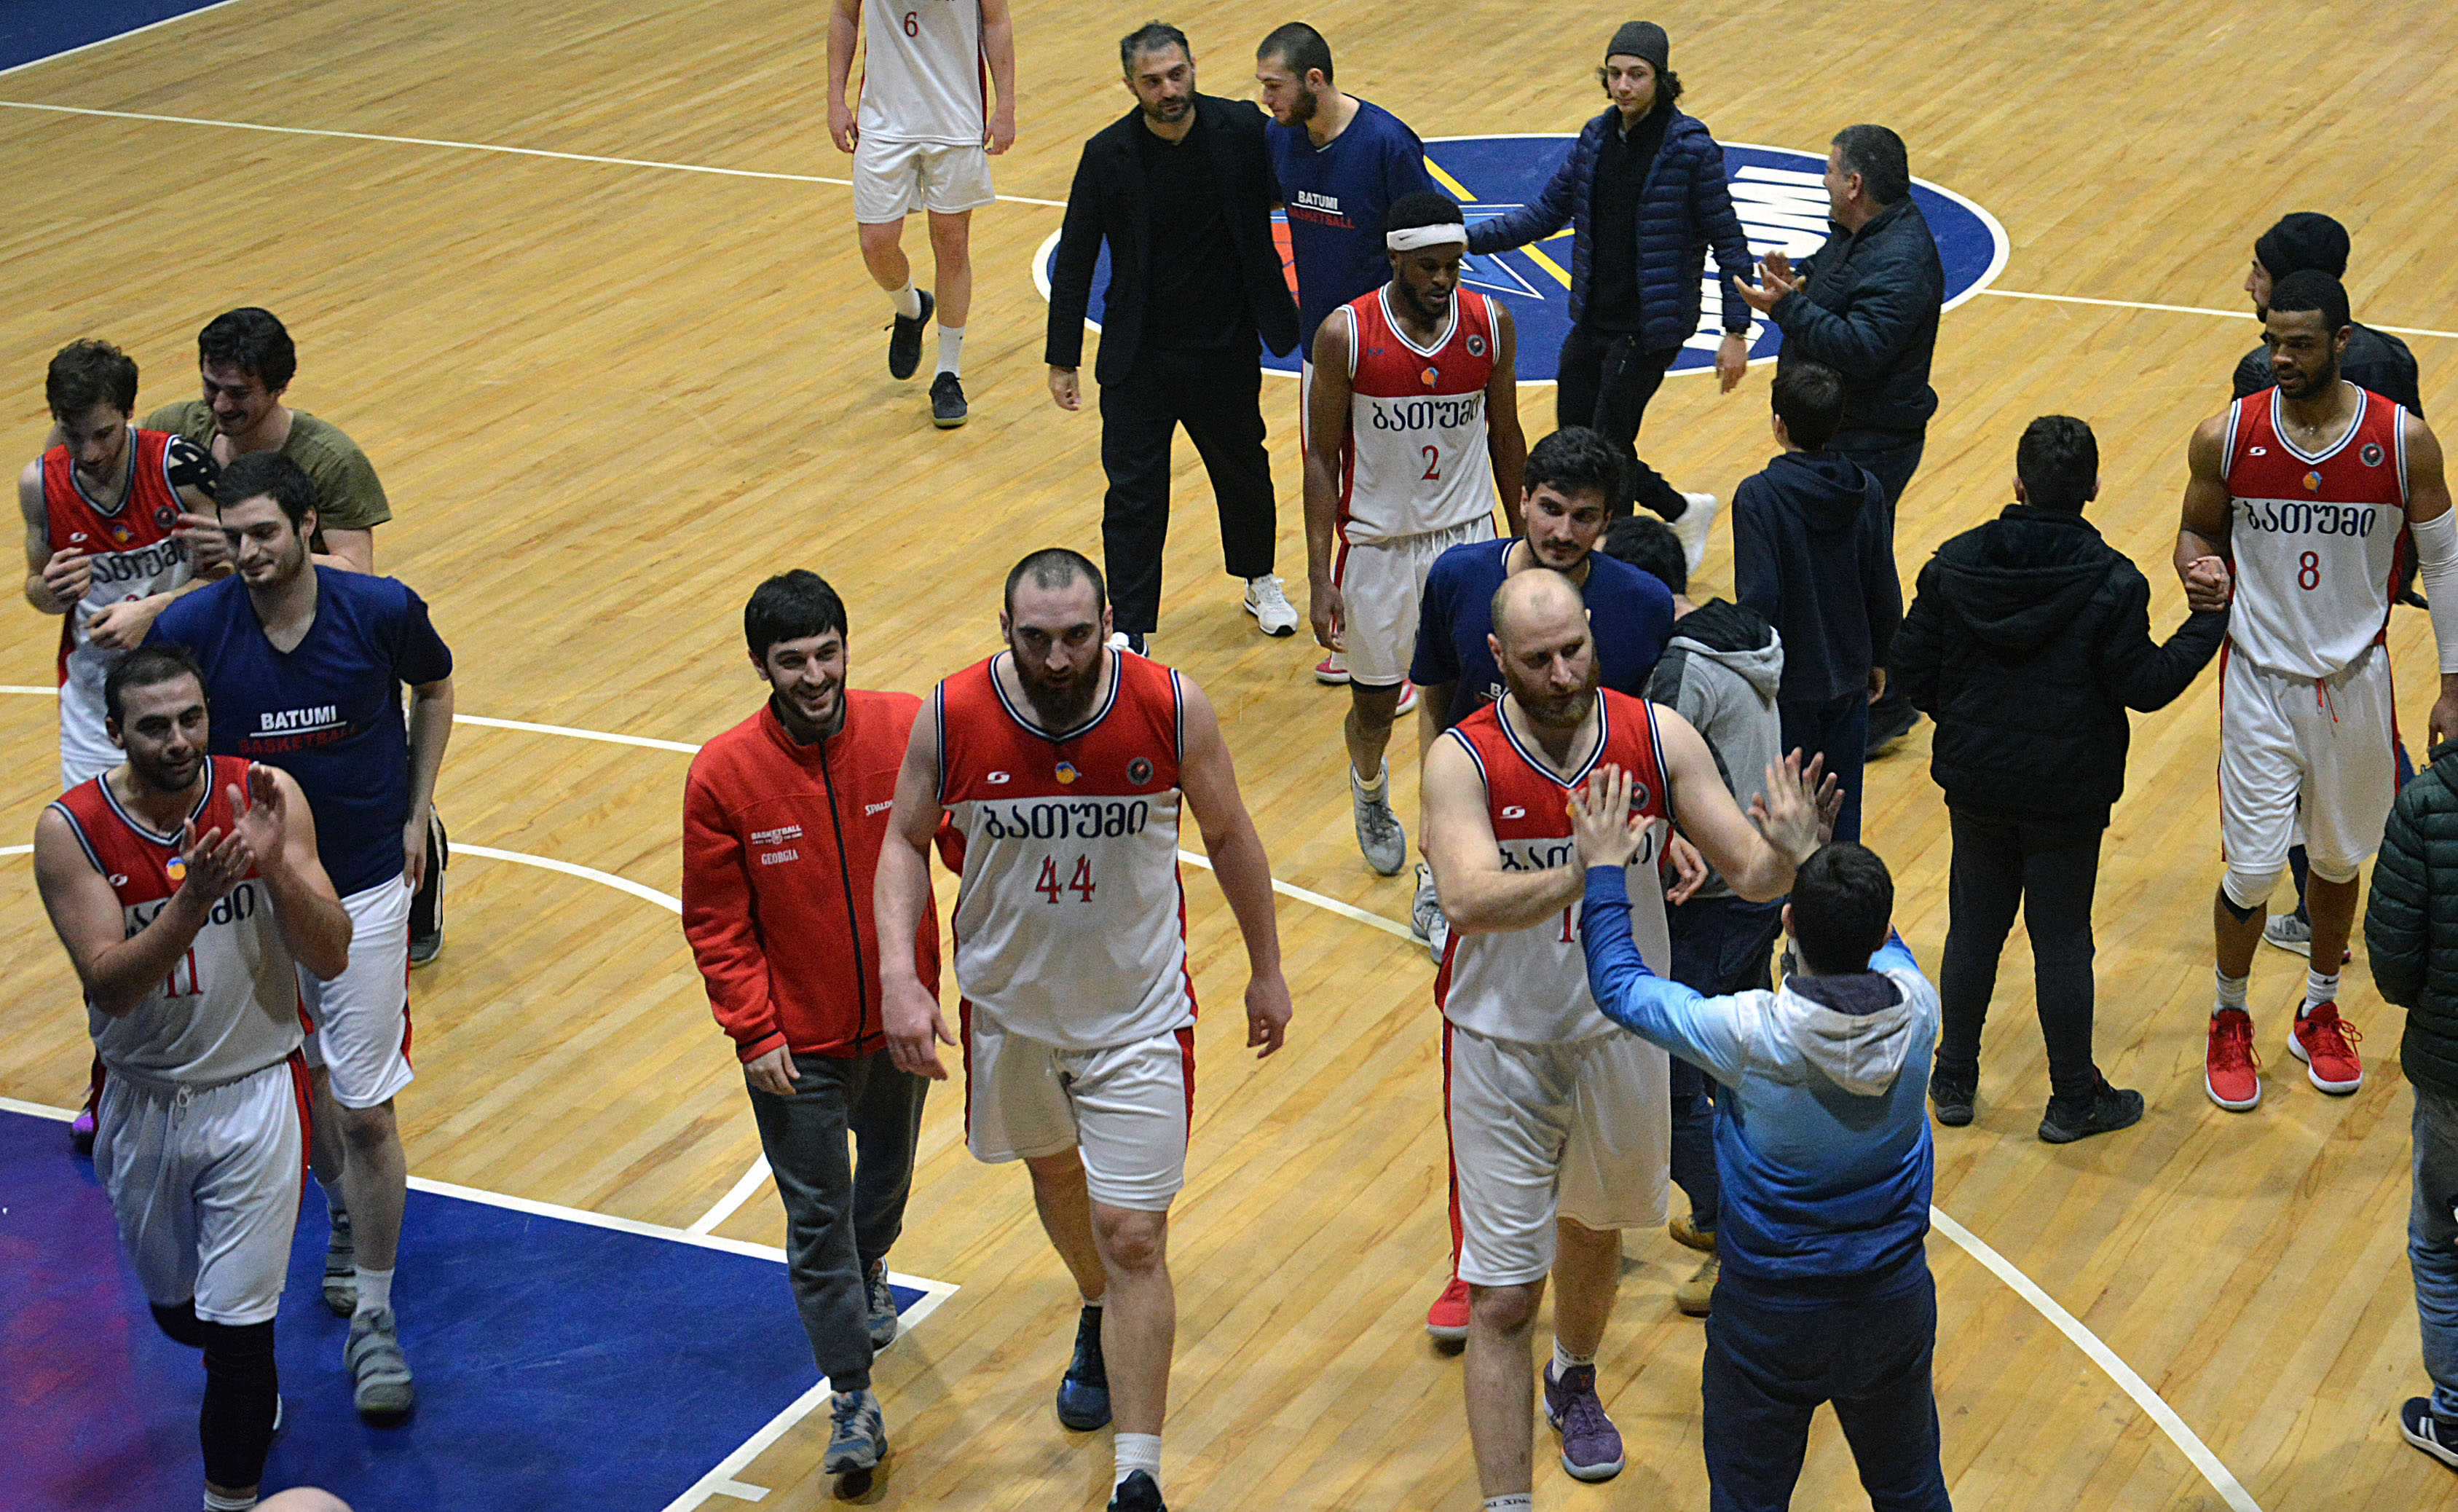 Batumi defeated Olimpi 69:61